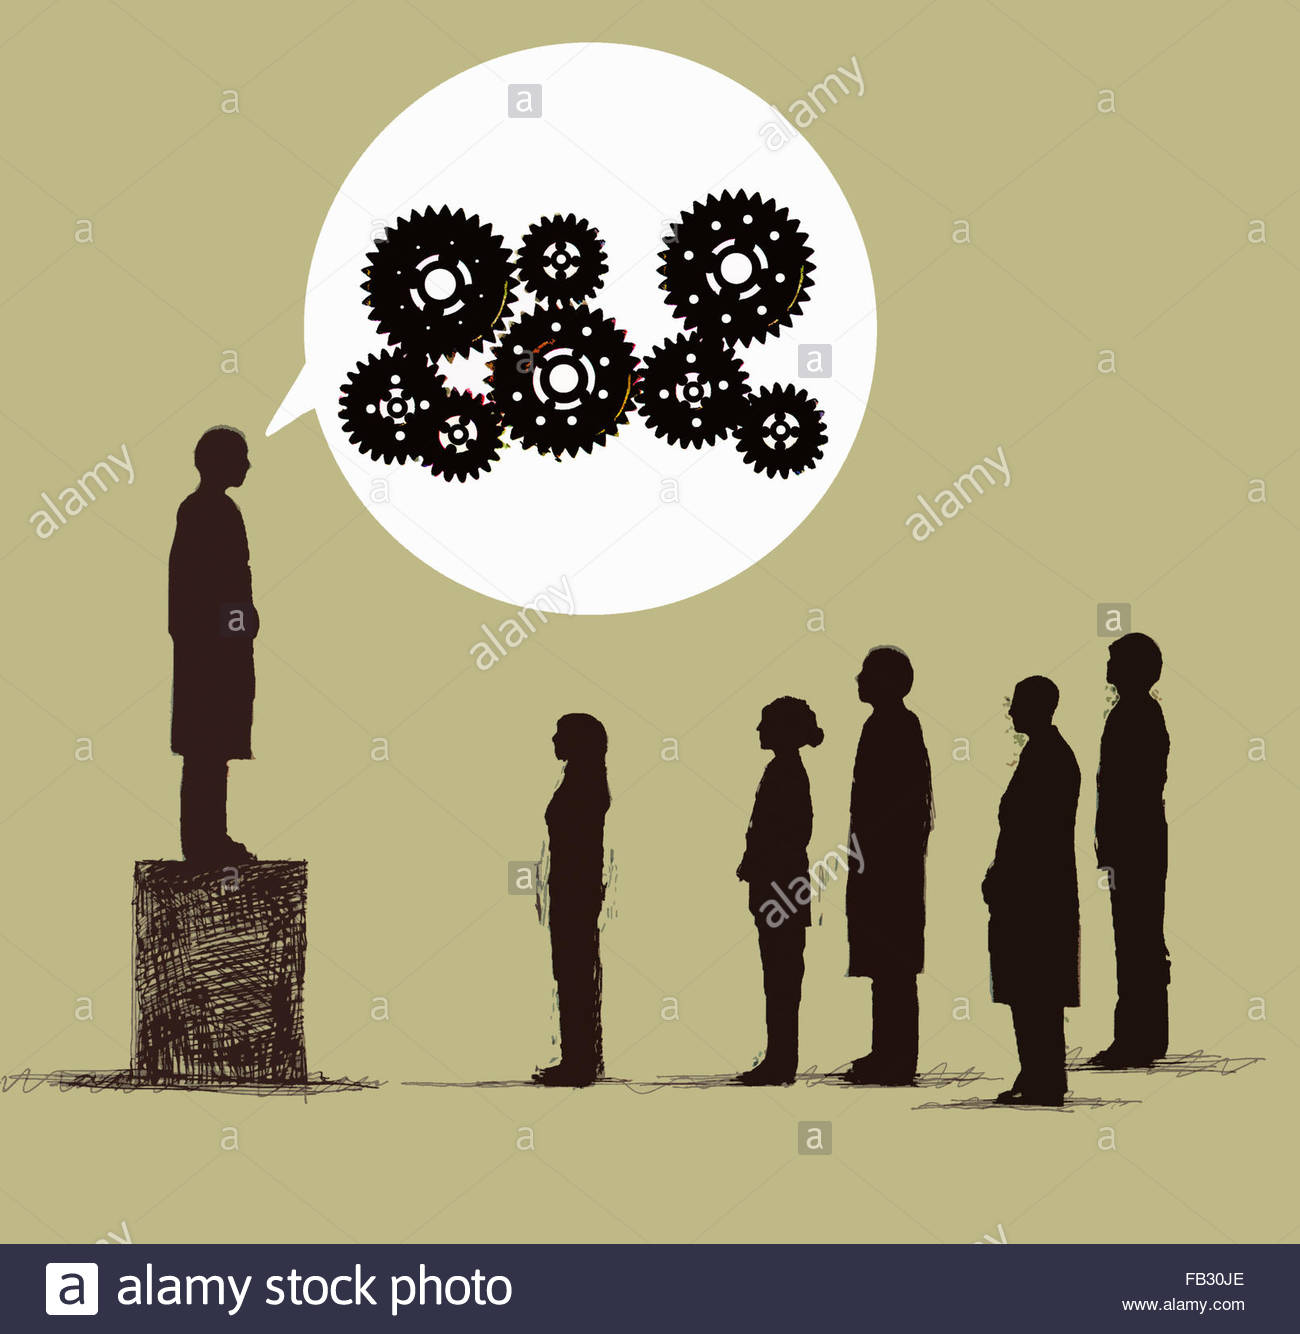 Man on box talking to audience with cogs in speech bubble - Stock Image